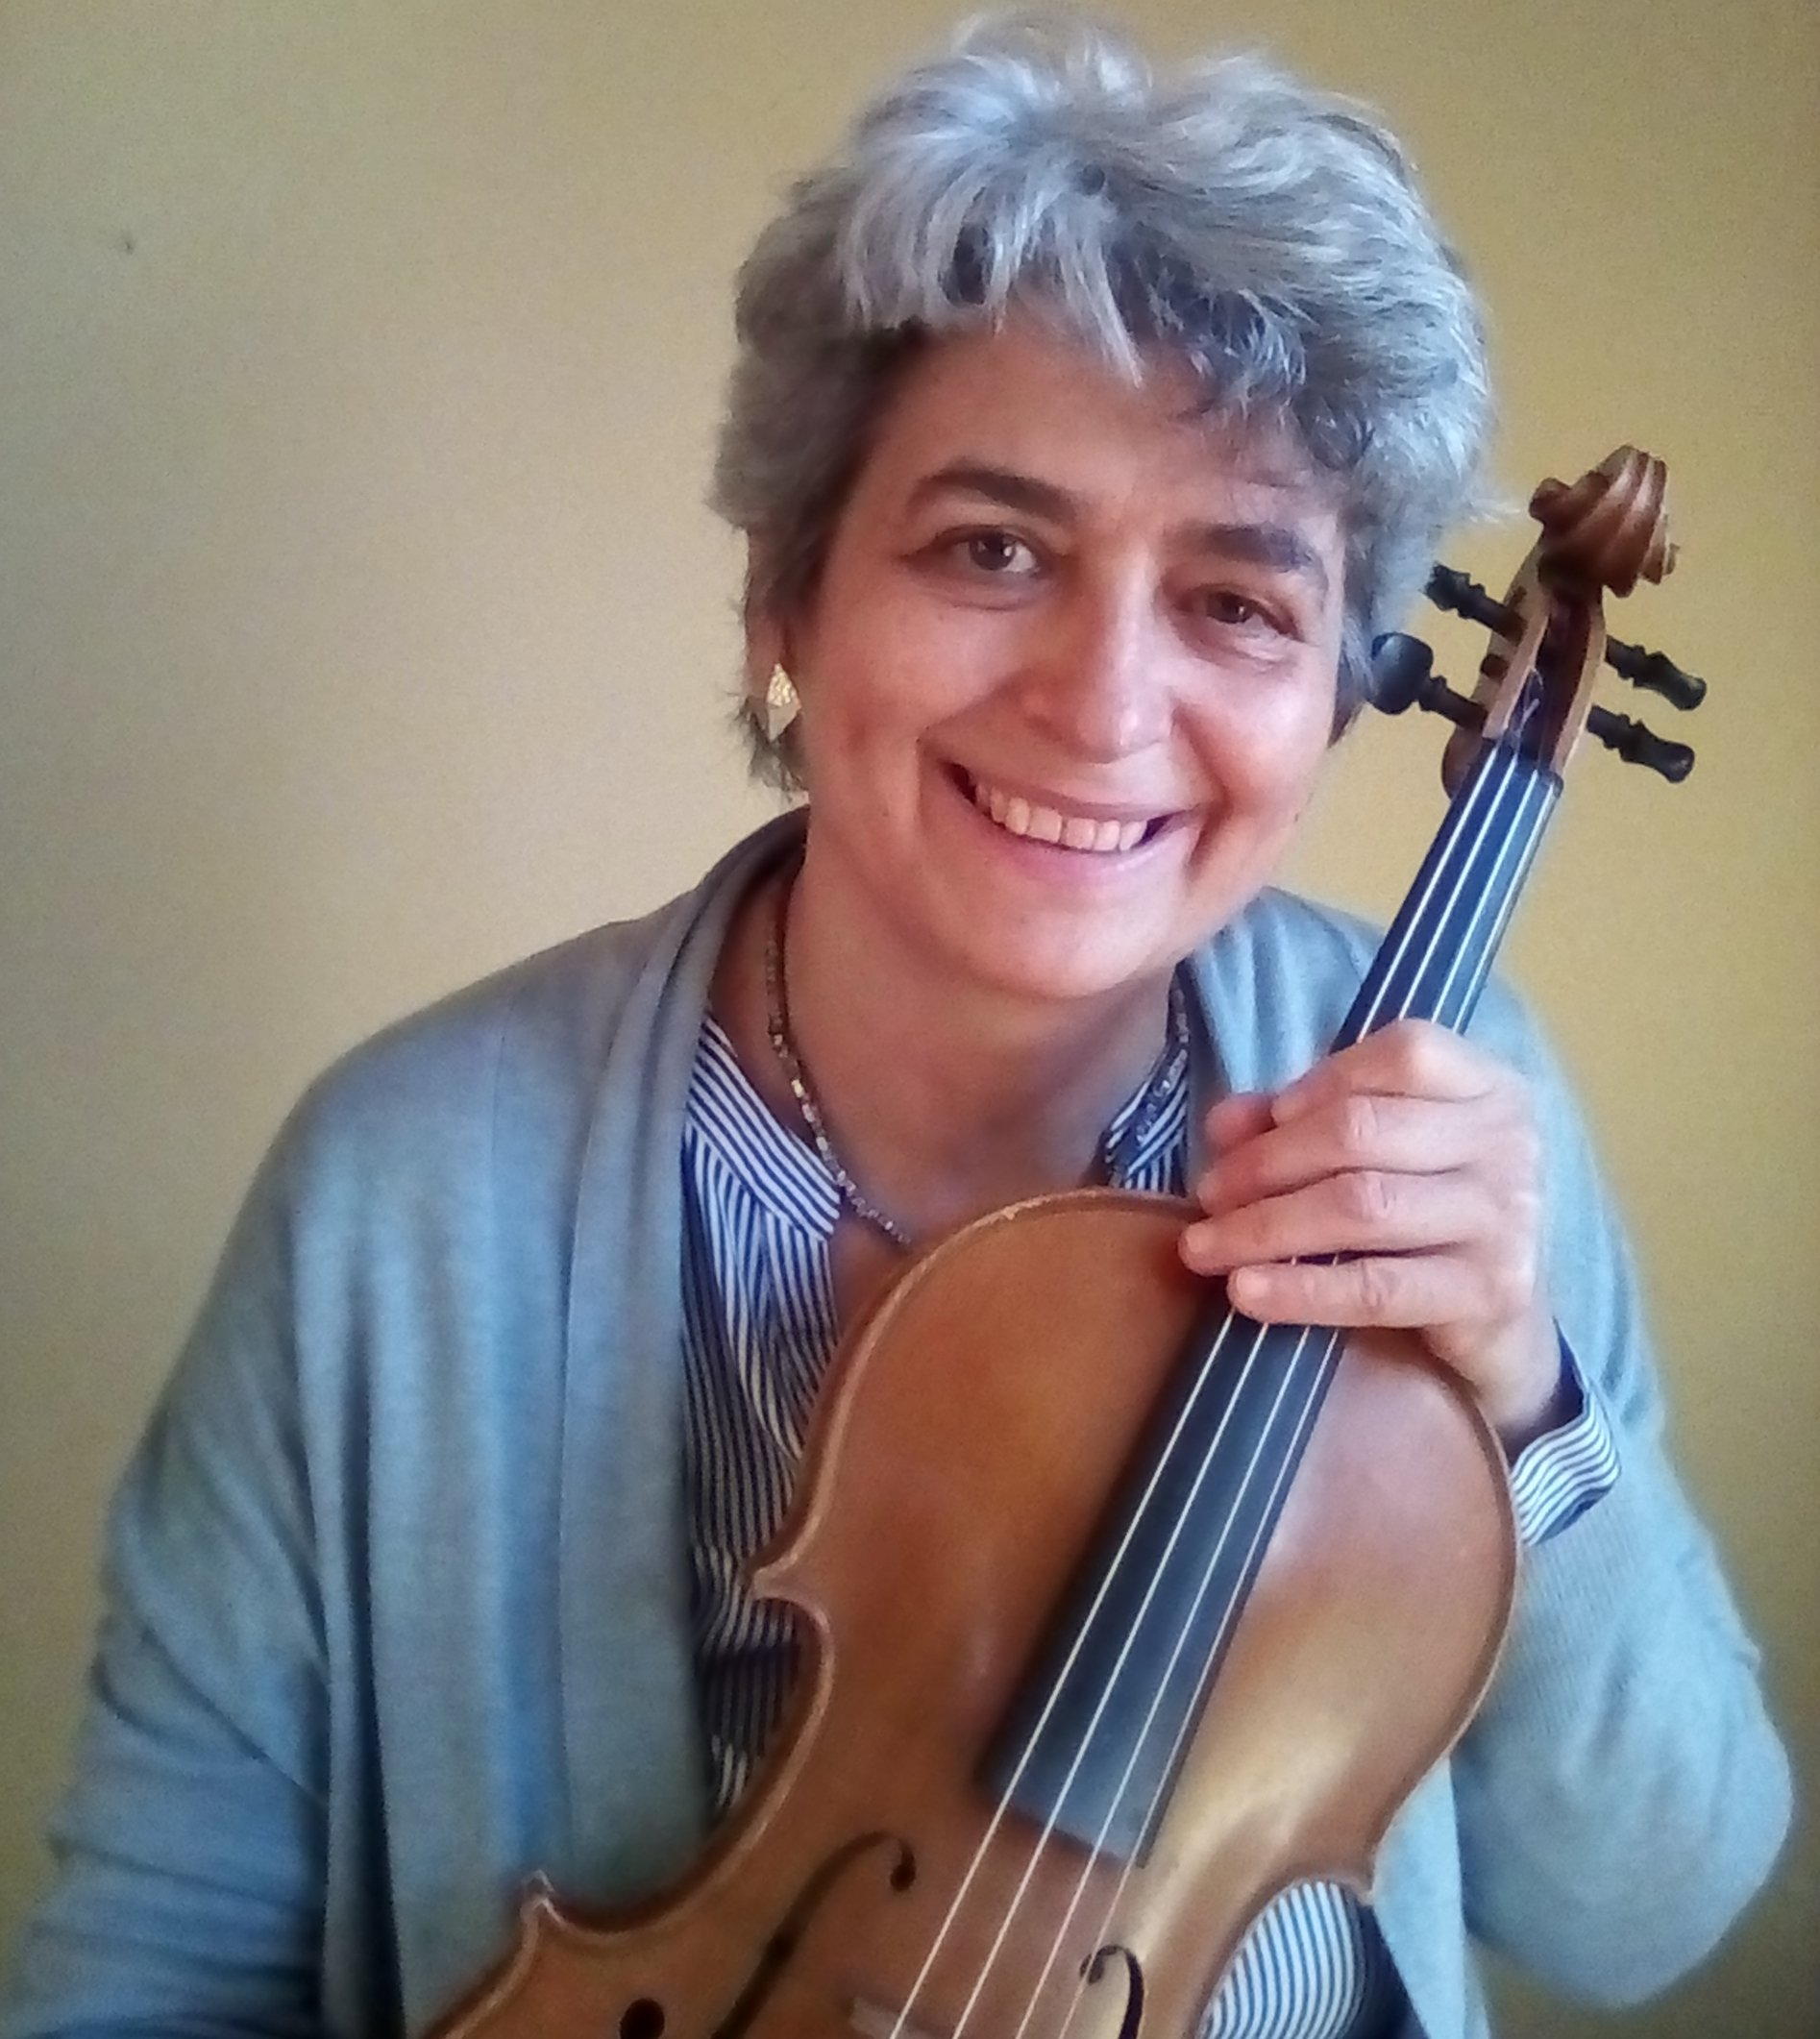 Monica Cuneo helps violin and viola players play free from pain, injuries and stage fright